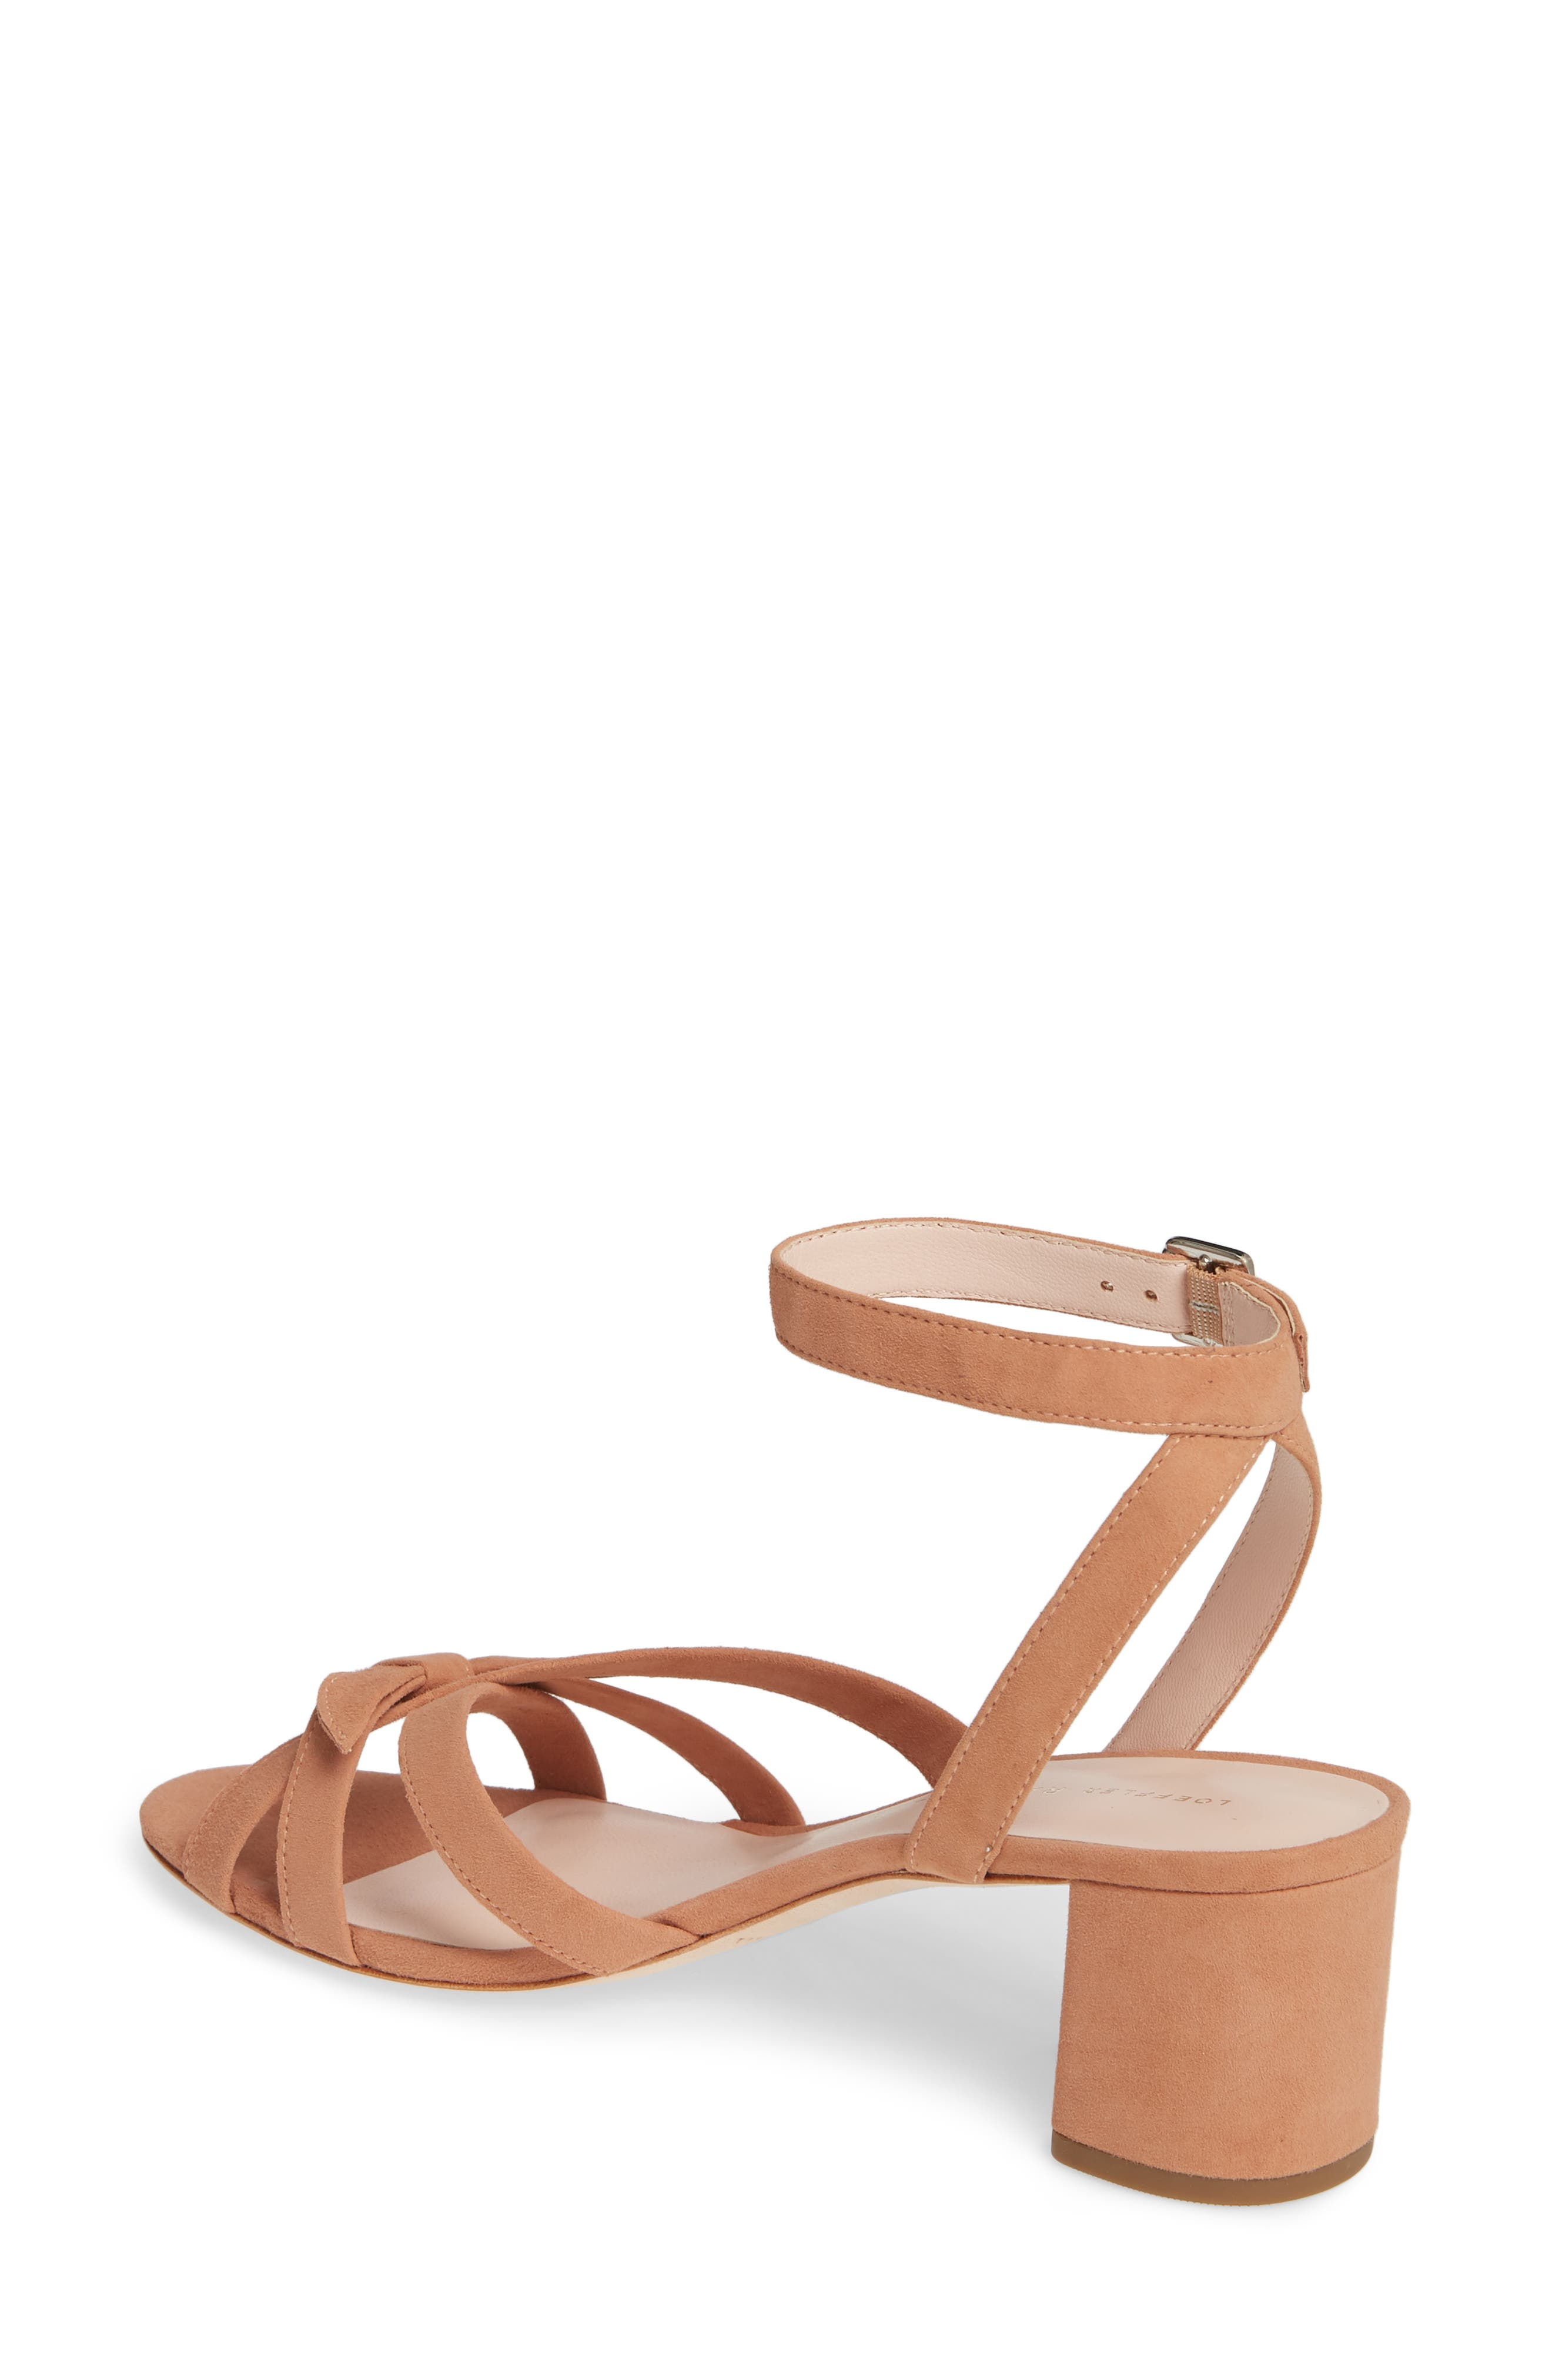 LOEFFLER RANDALL, Anny Knotted Sandal, Alternate thumbnail 2, color, COQUILLE